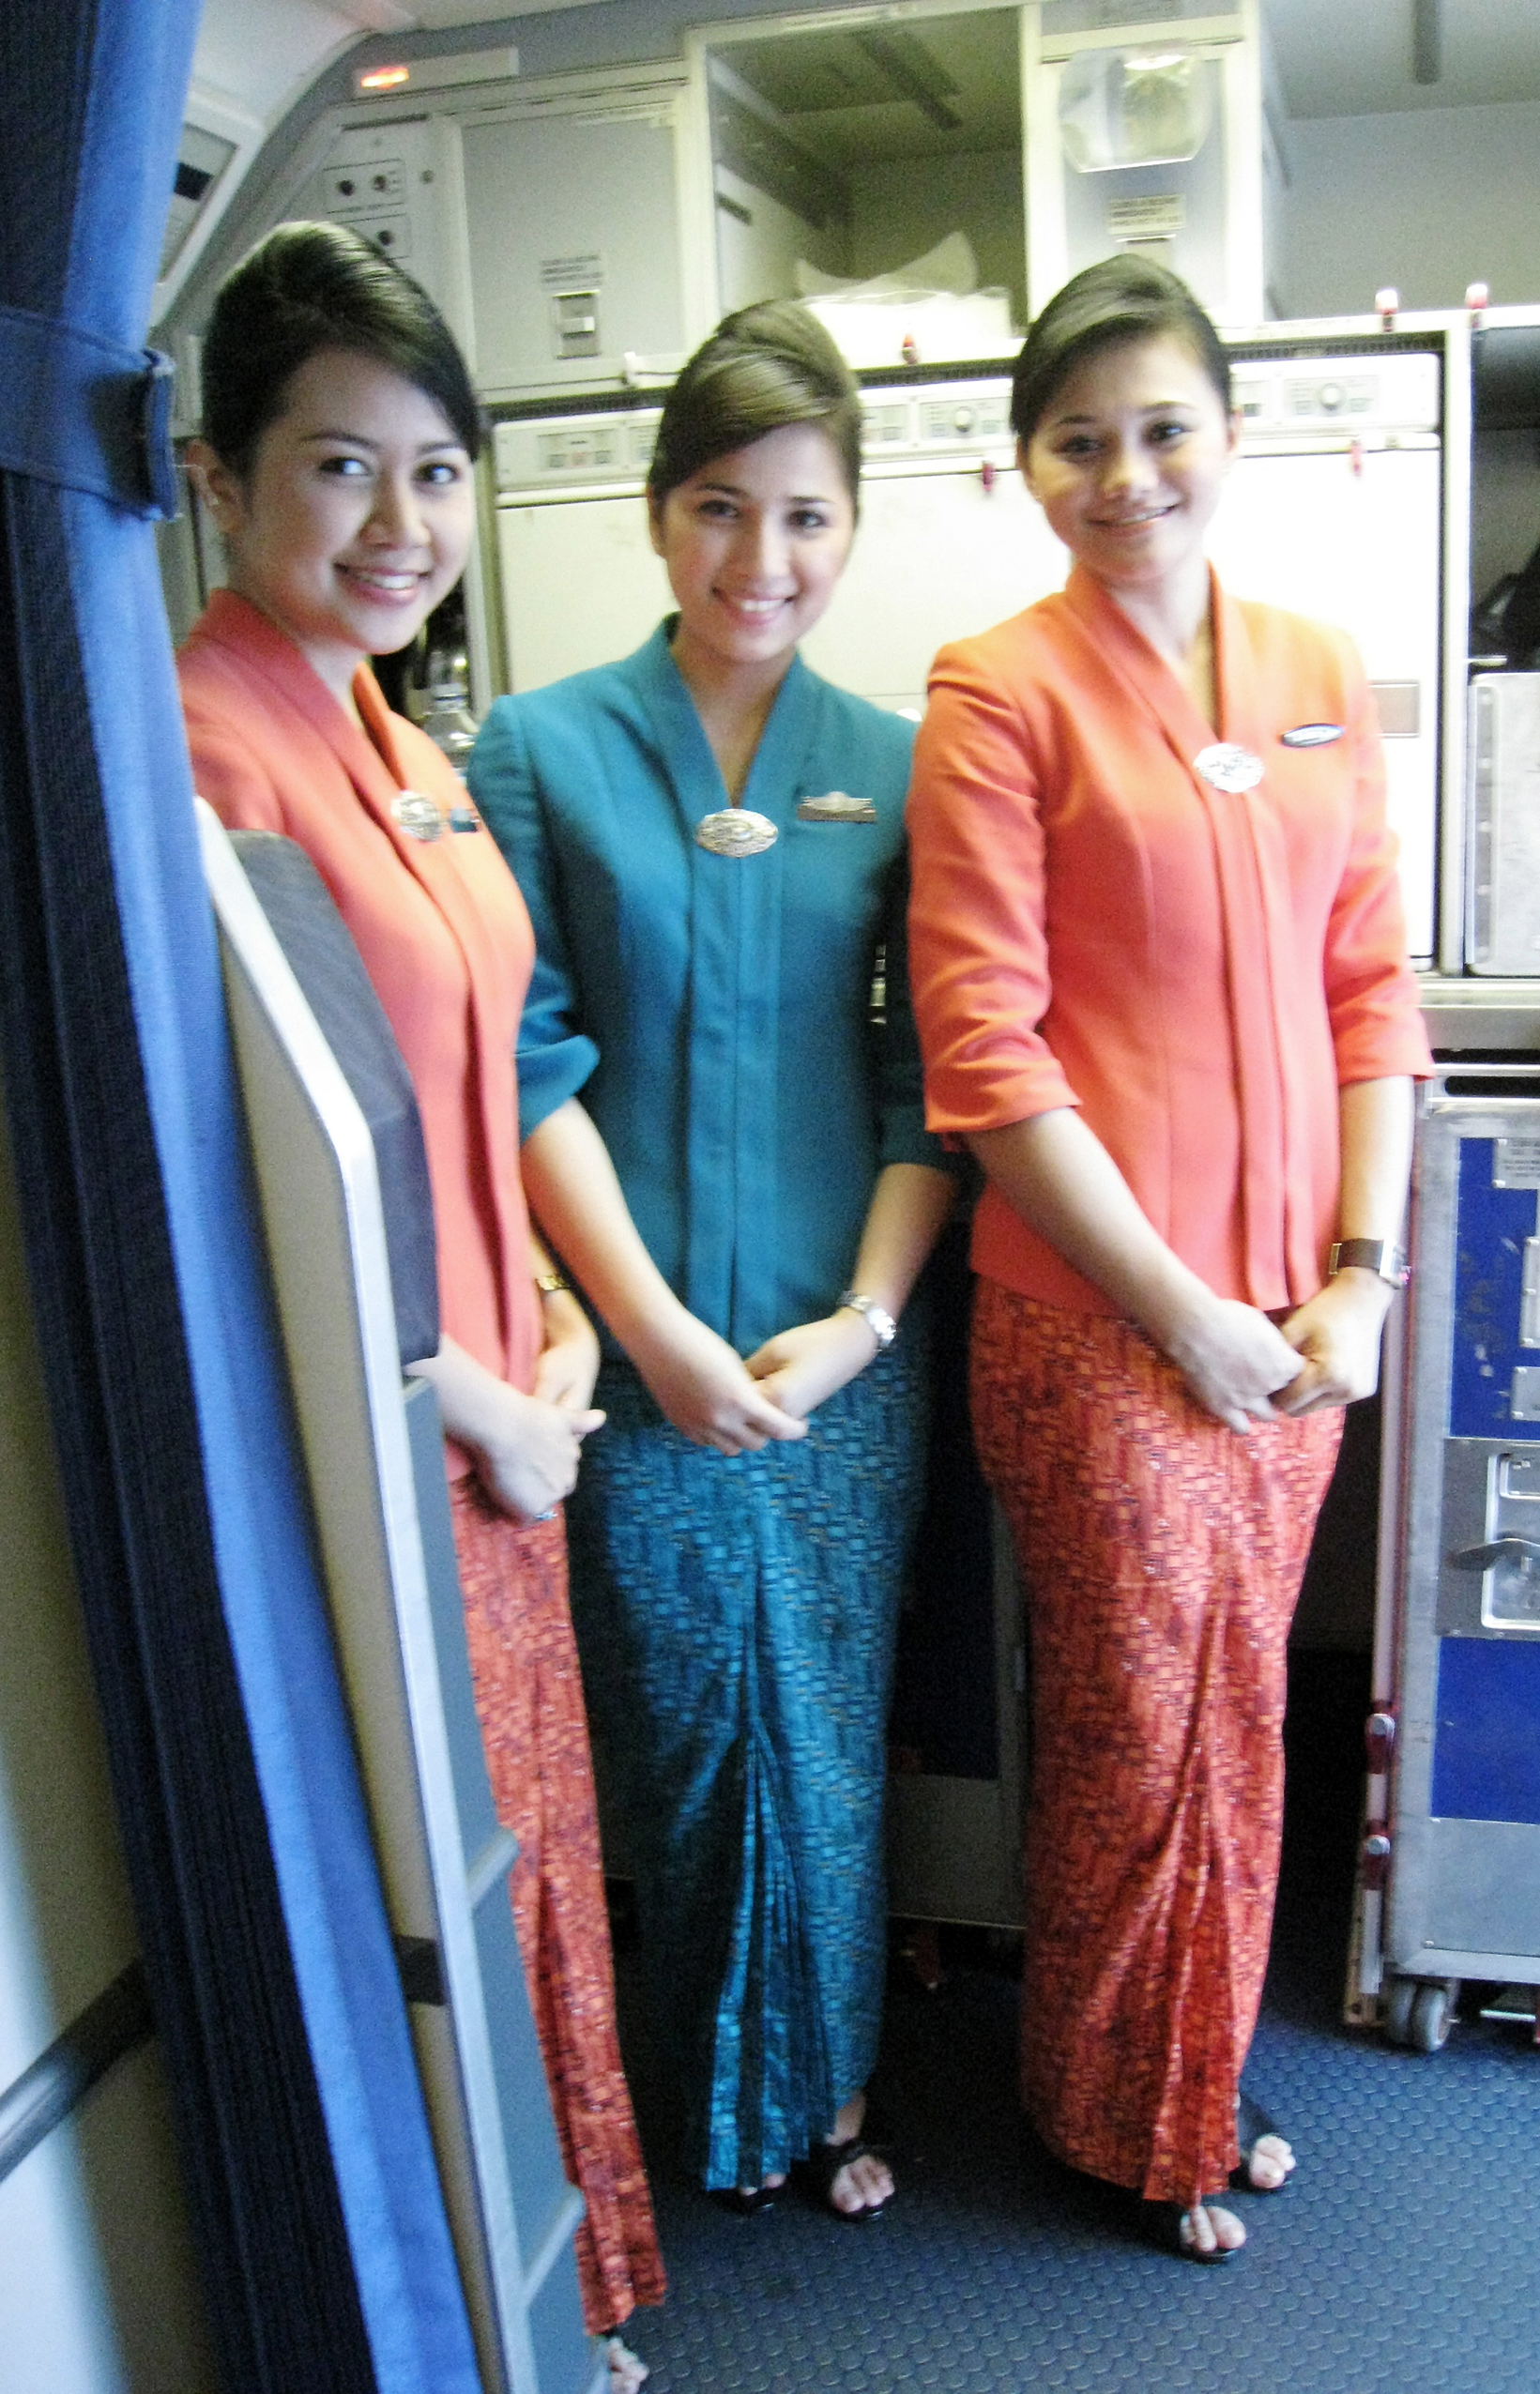 Description Garuda Indonesia Flight Attendants in Kebaya.jpg